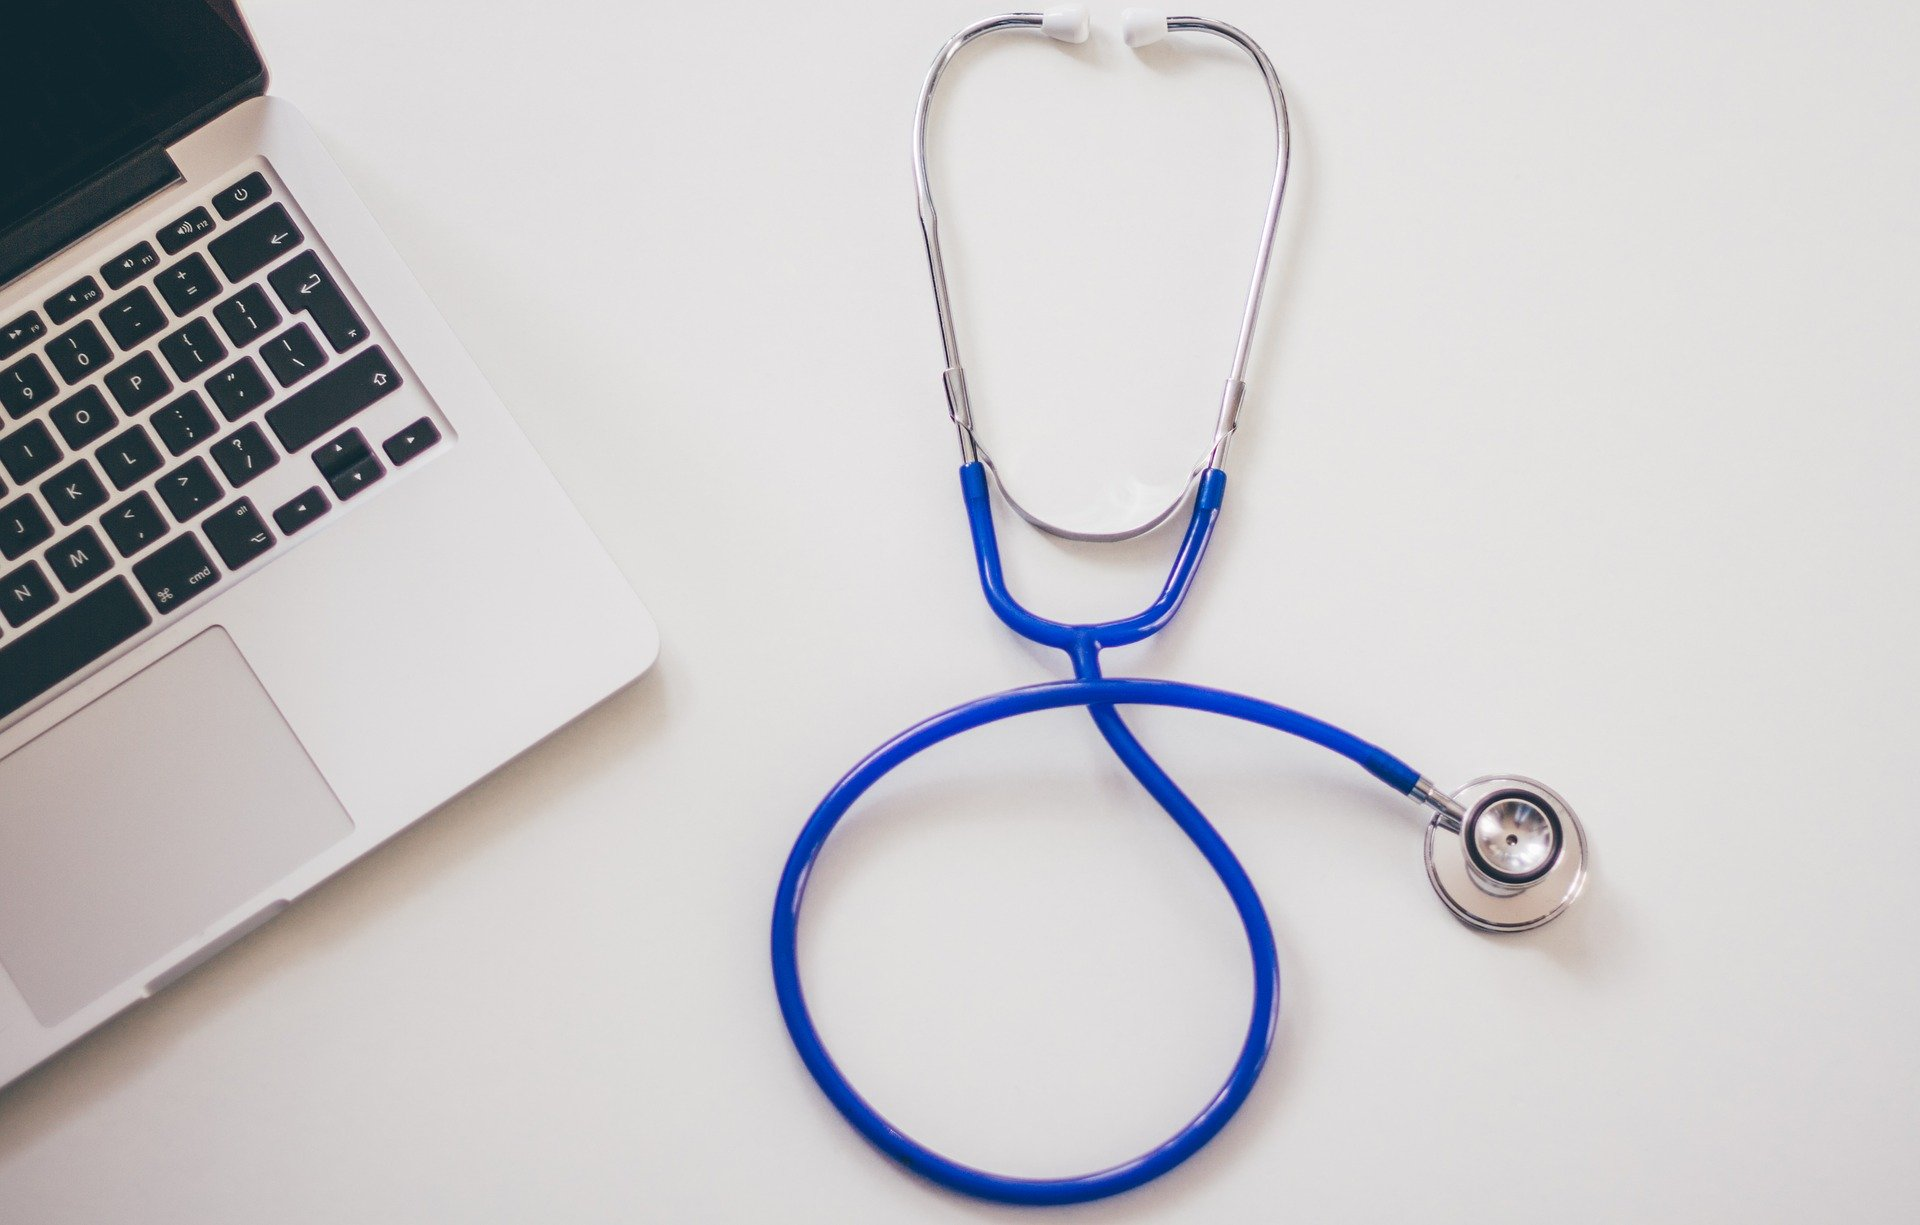 Laptop and Stethoscope - Online Doctor - Telemedicine